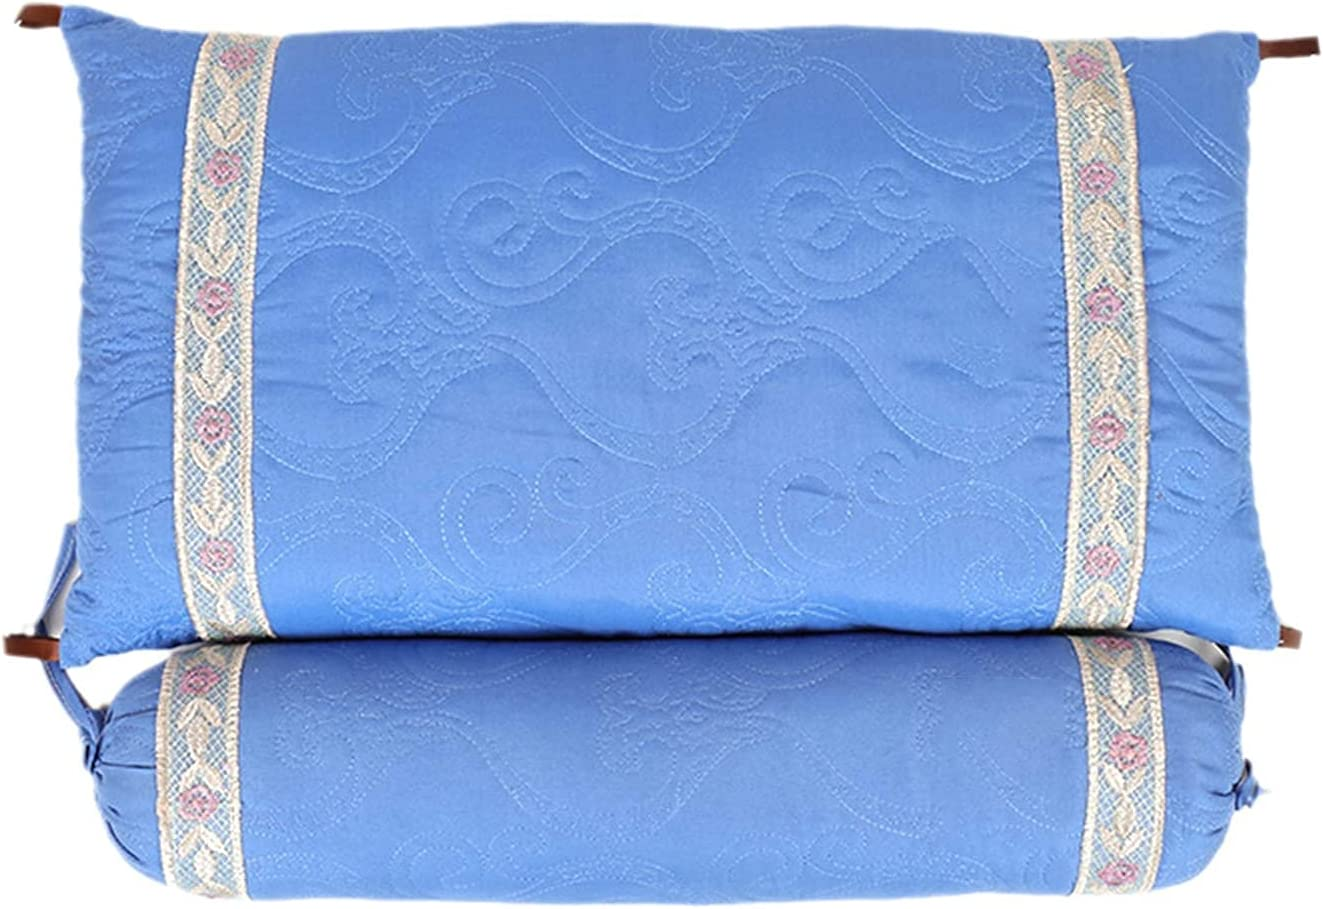 Neck Pillows Credence for Sleeping Super Fabric Max 80% OFF Soft Pil Conjoined Cotton